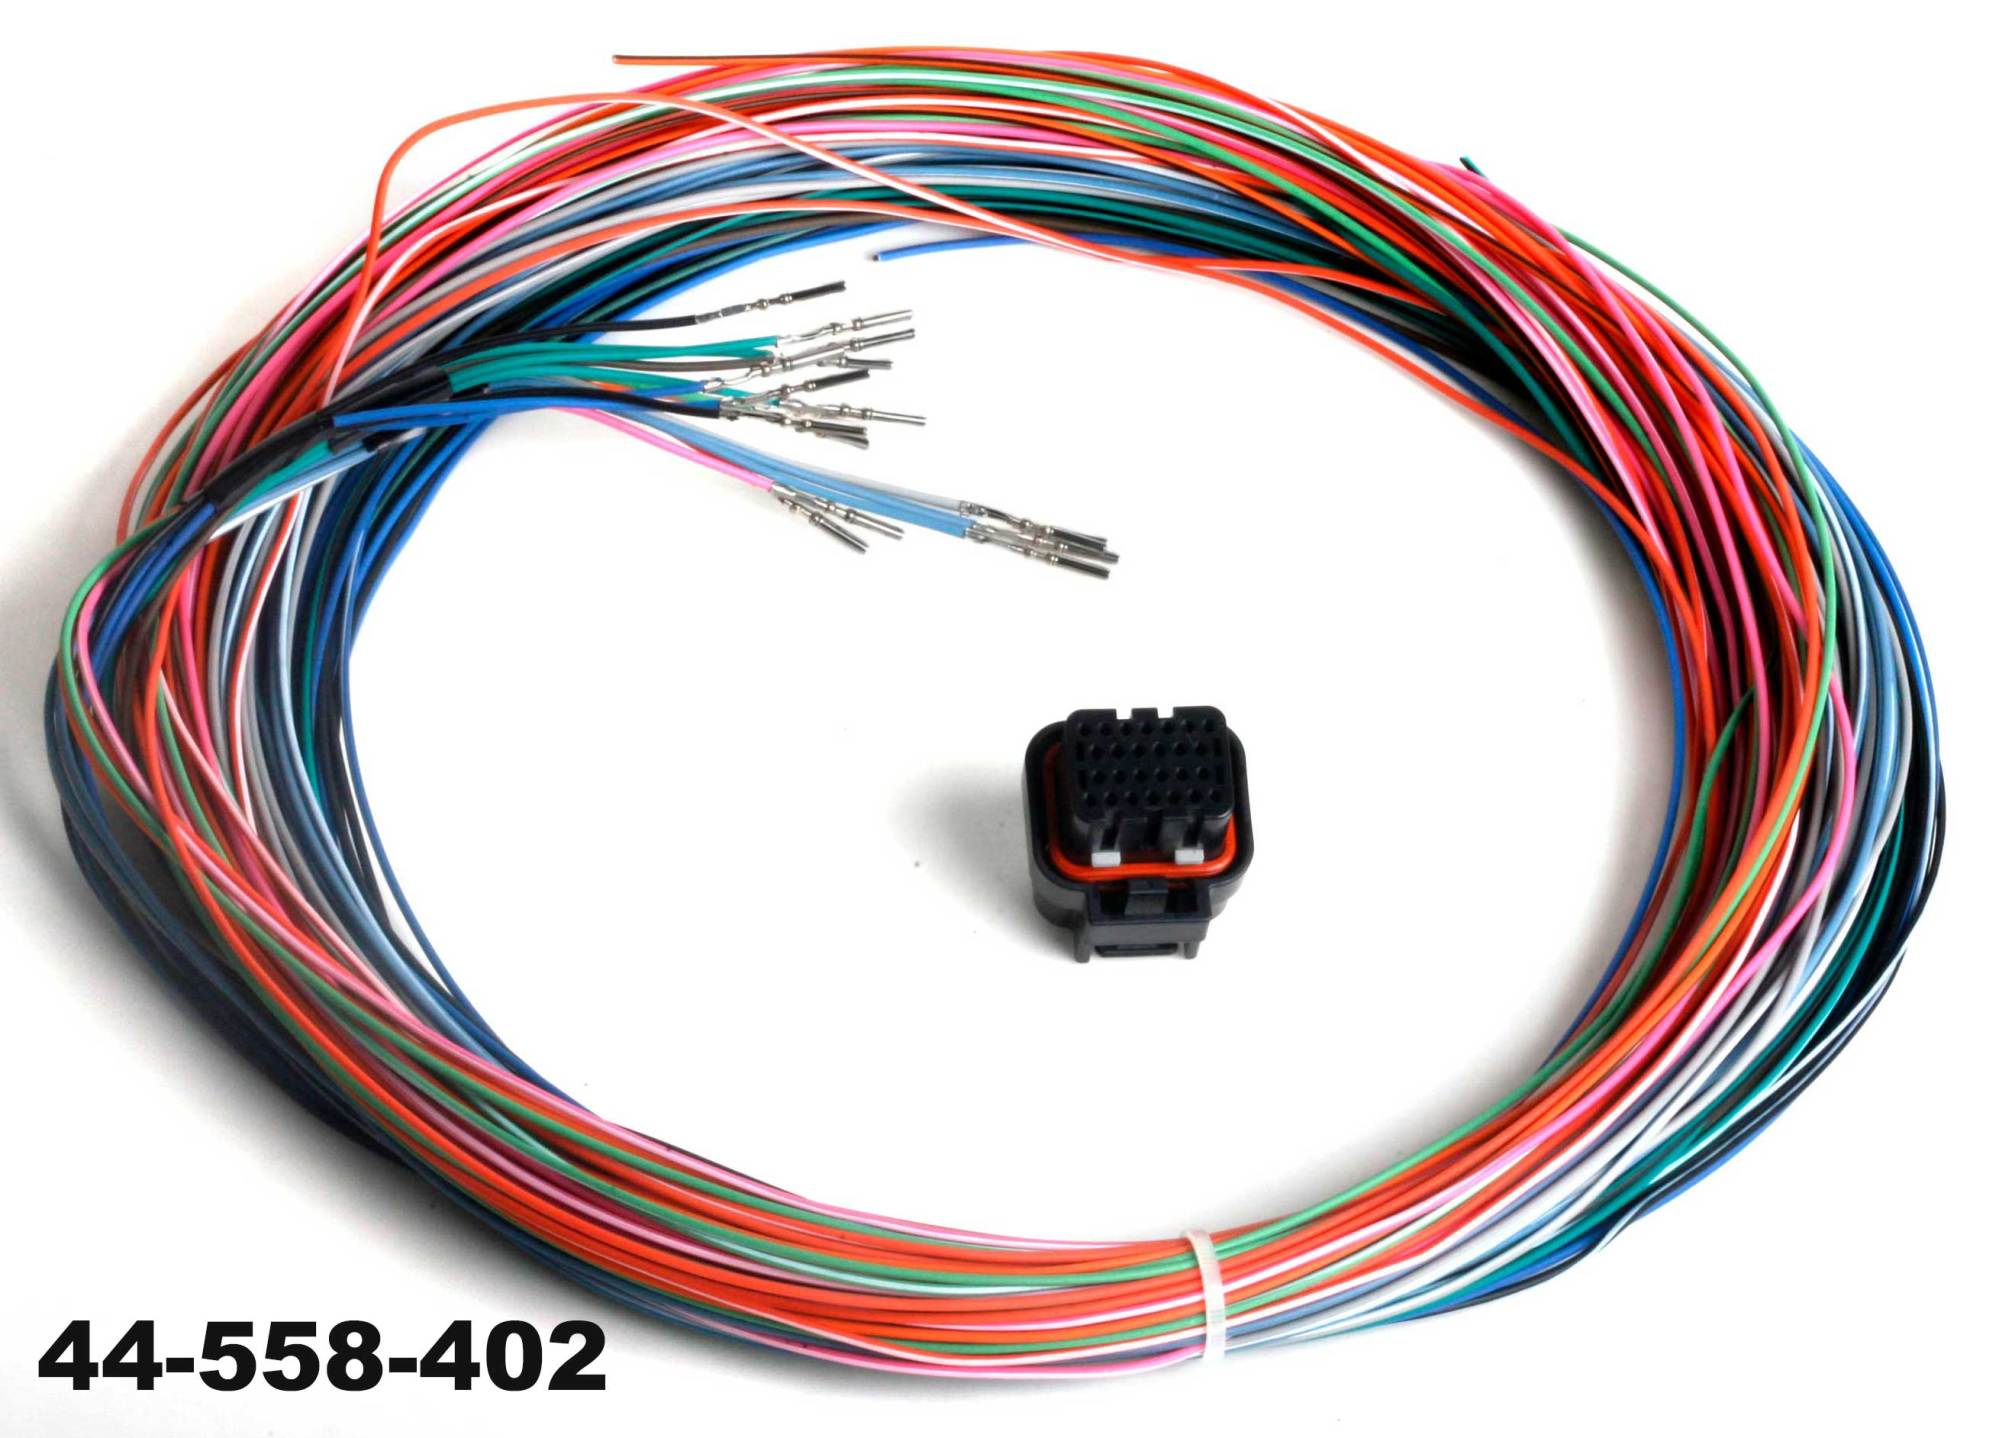 hight resolution of holley j2b connector and harness